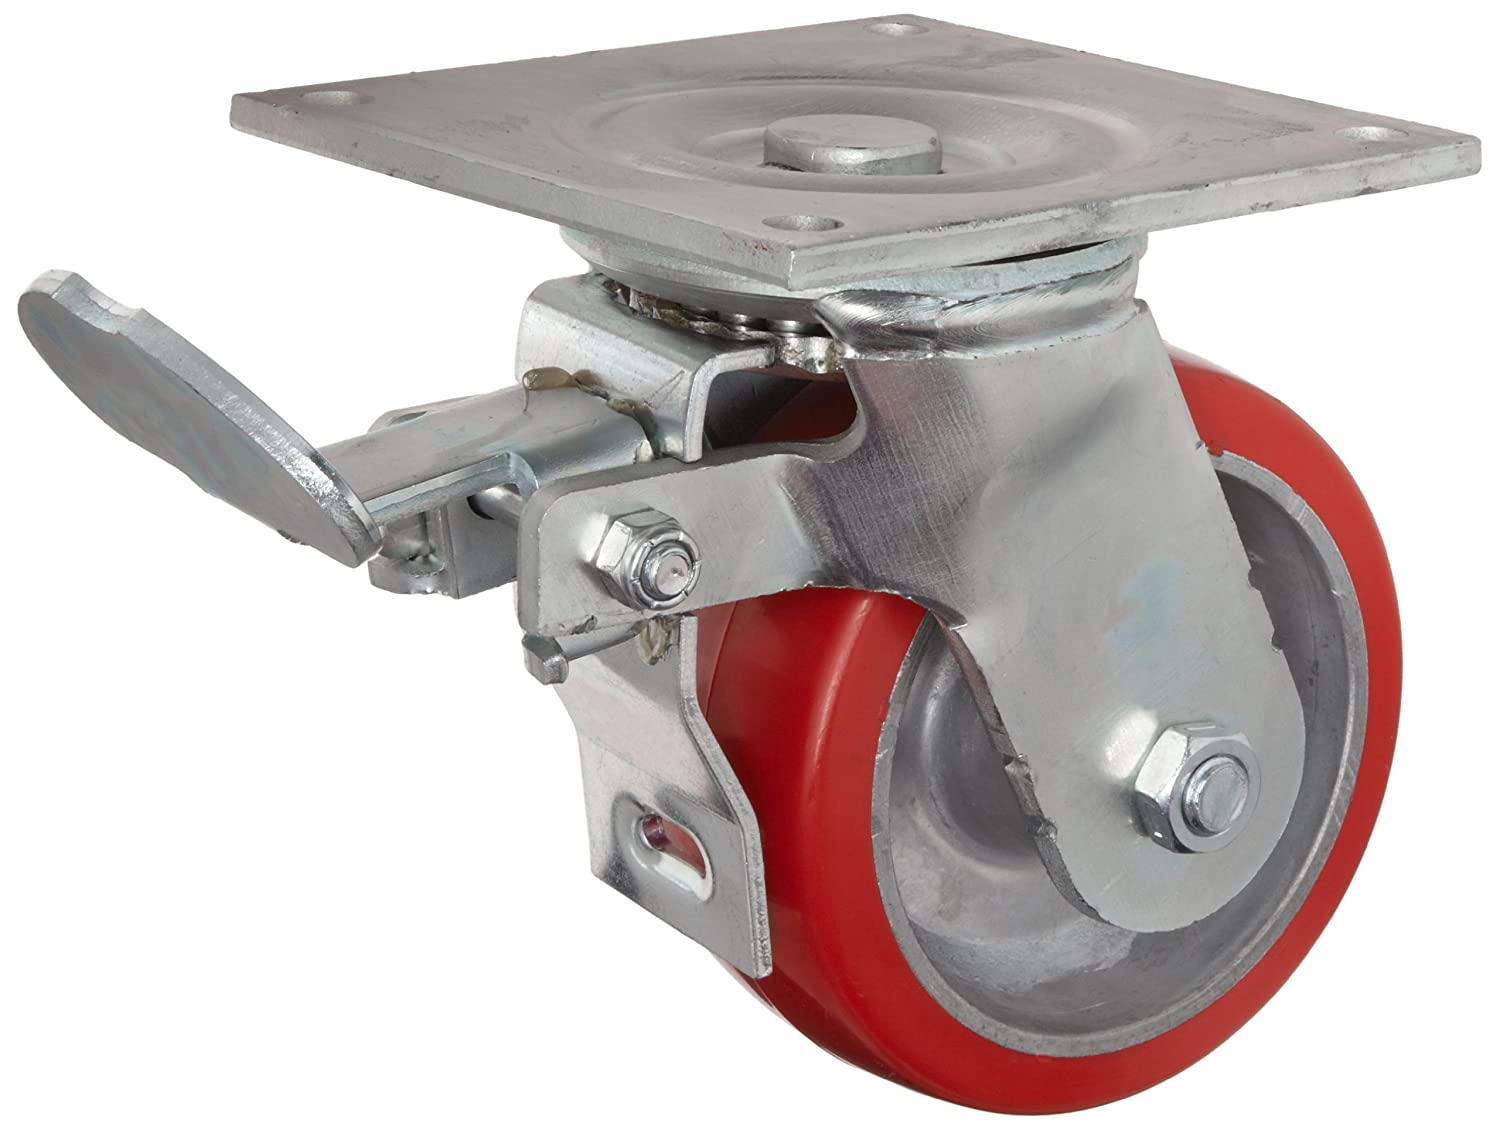 E.R. Wagner Plate Max 56% OFF Caster Swivel Brake Polyuret Total-Lock with Ultra-Cheap Deals